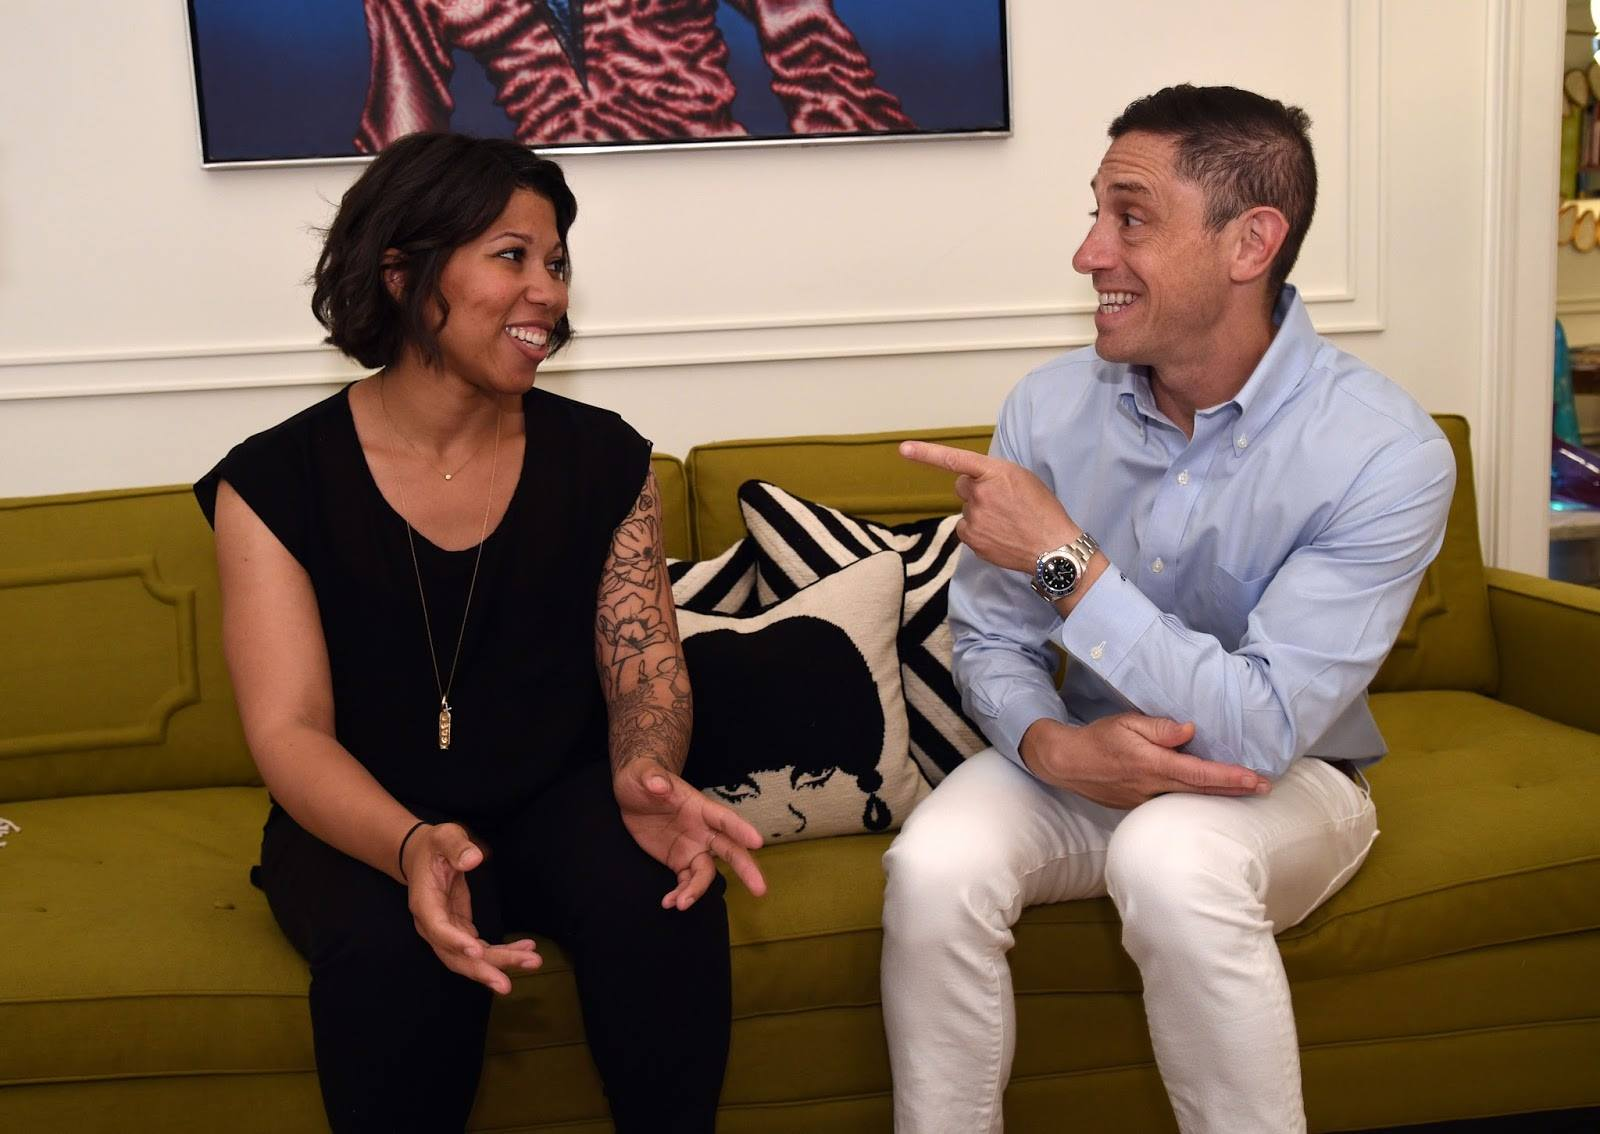 Jonathan Adler on Design Philosophy, Breaking the Rules, and The Power of Choice